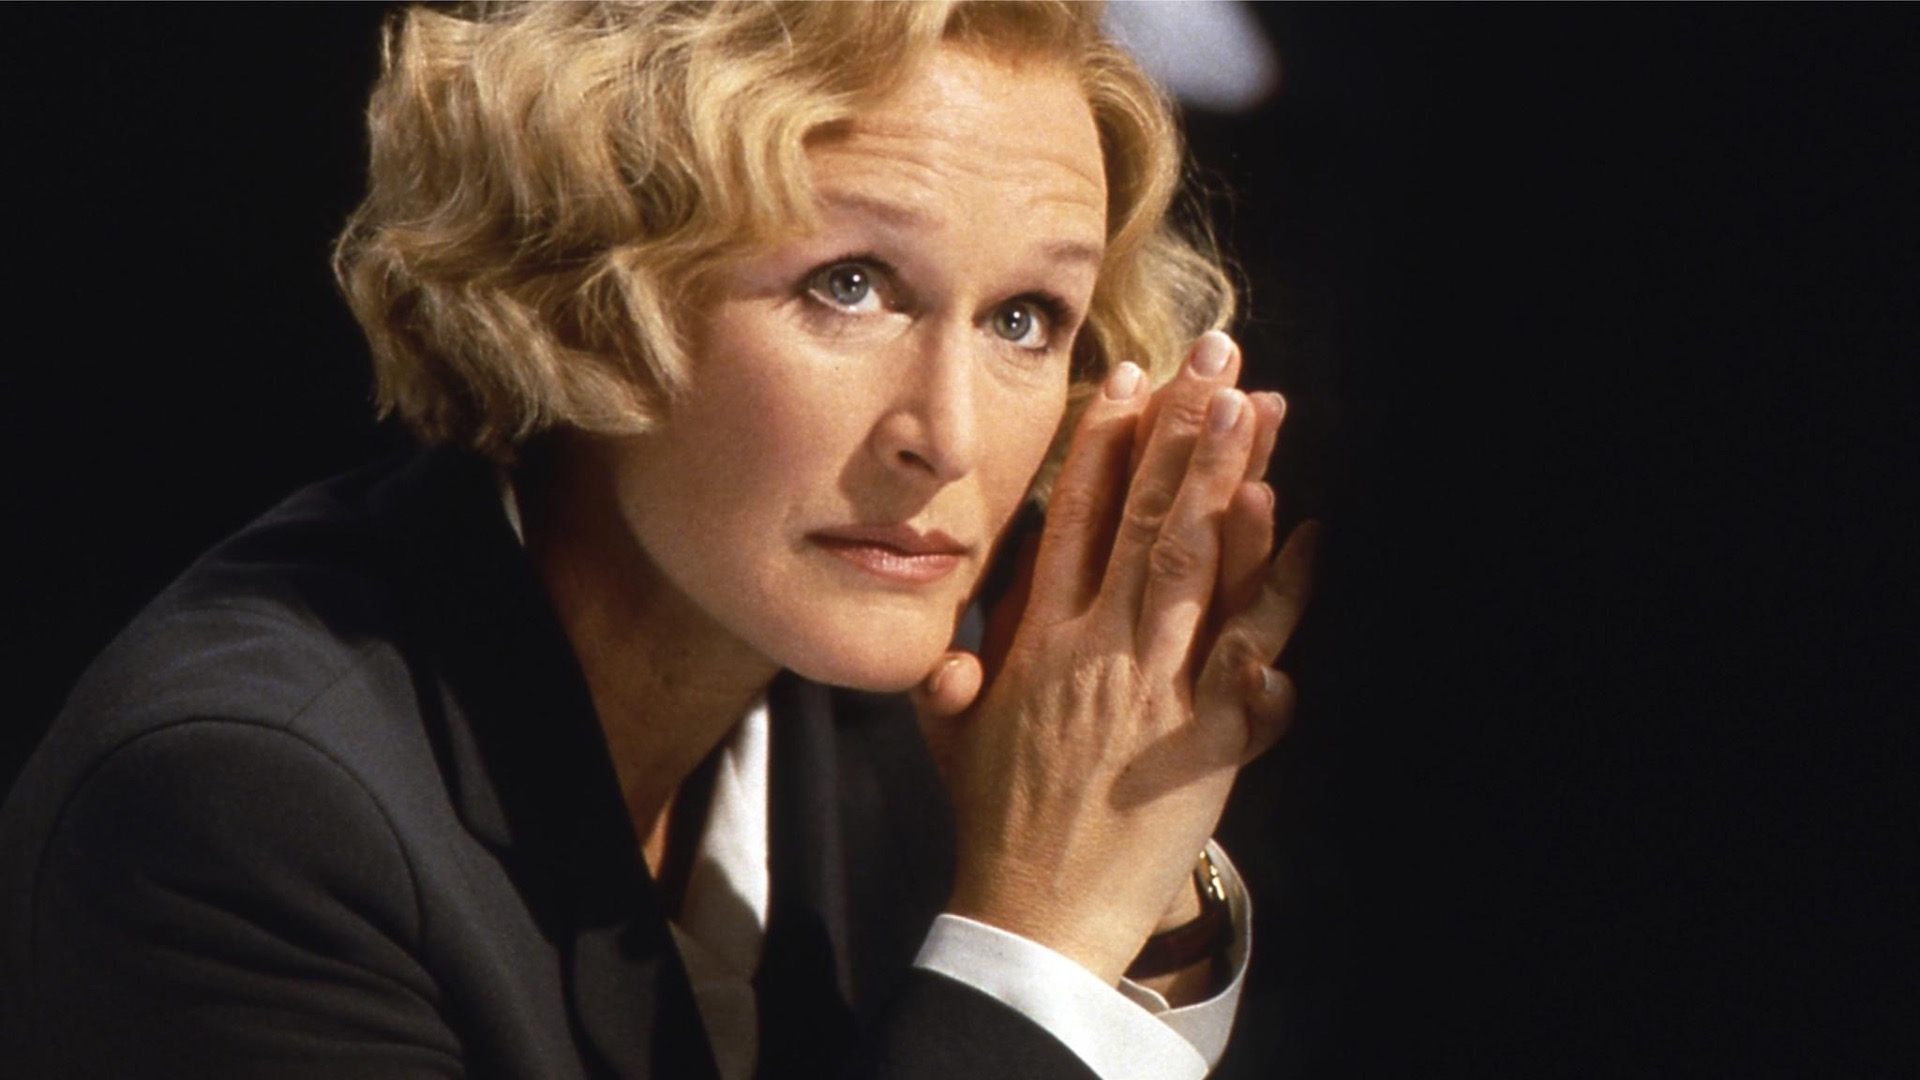 Glenn Close in Air Force One.